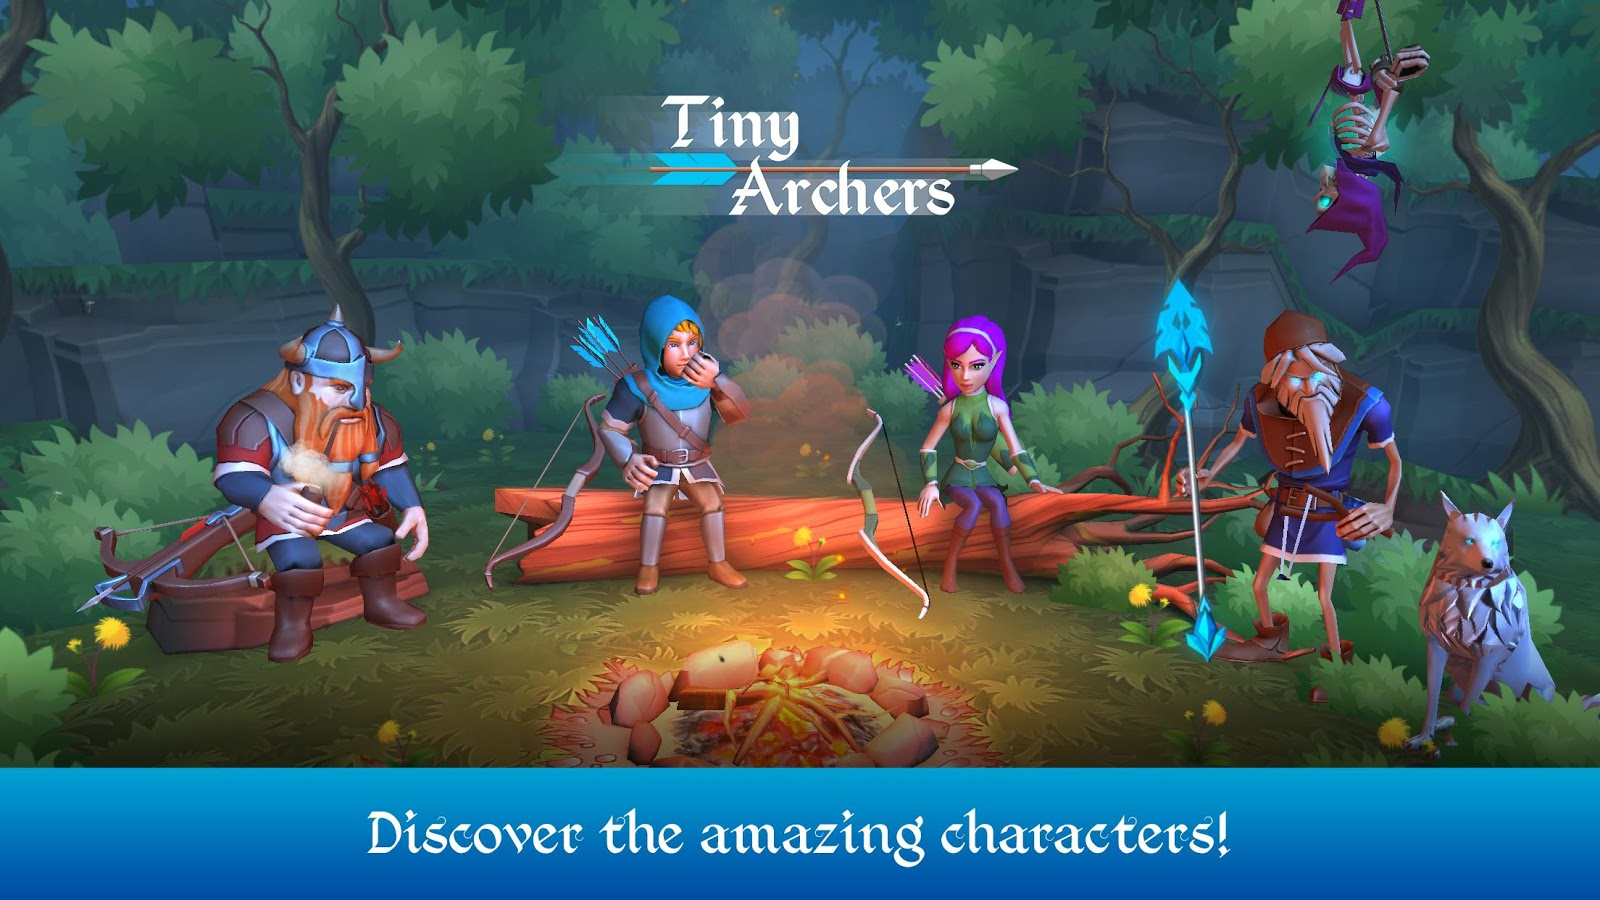 Tiny Archers Screenshot 3